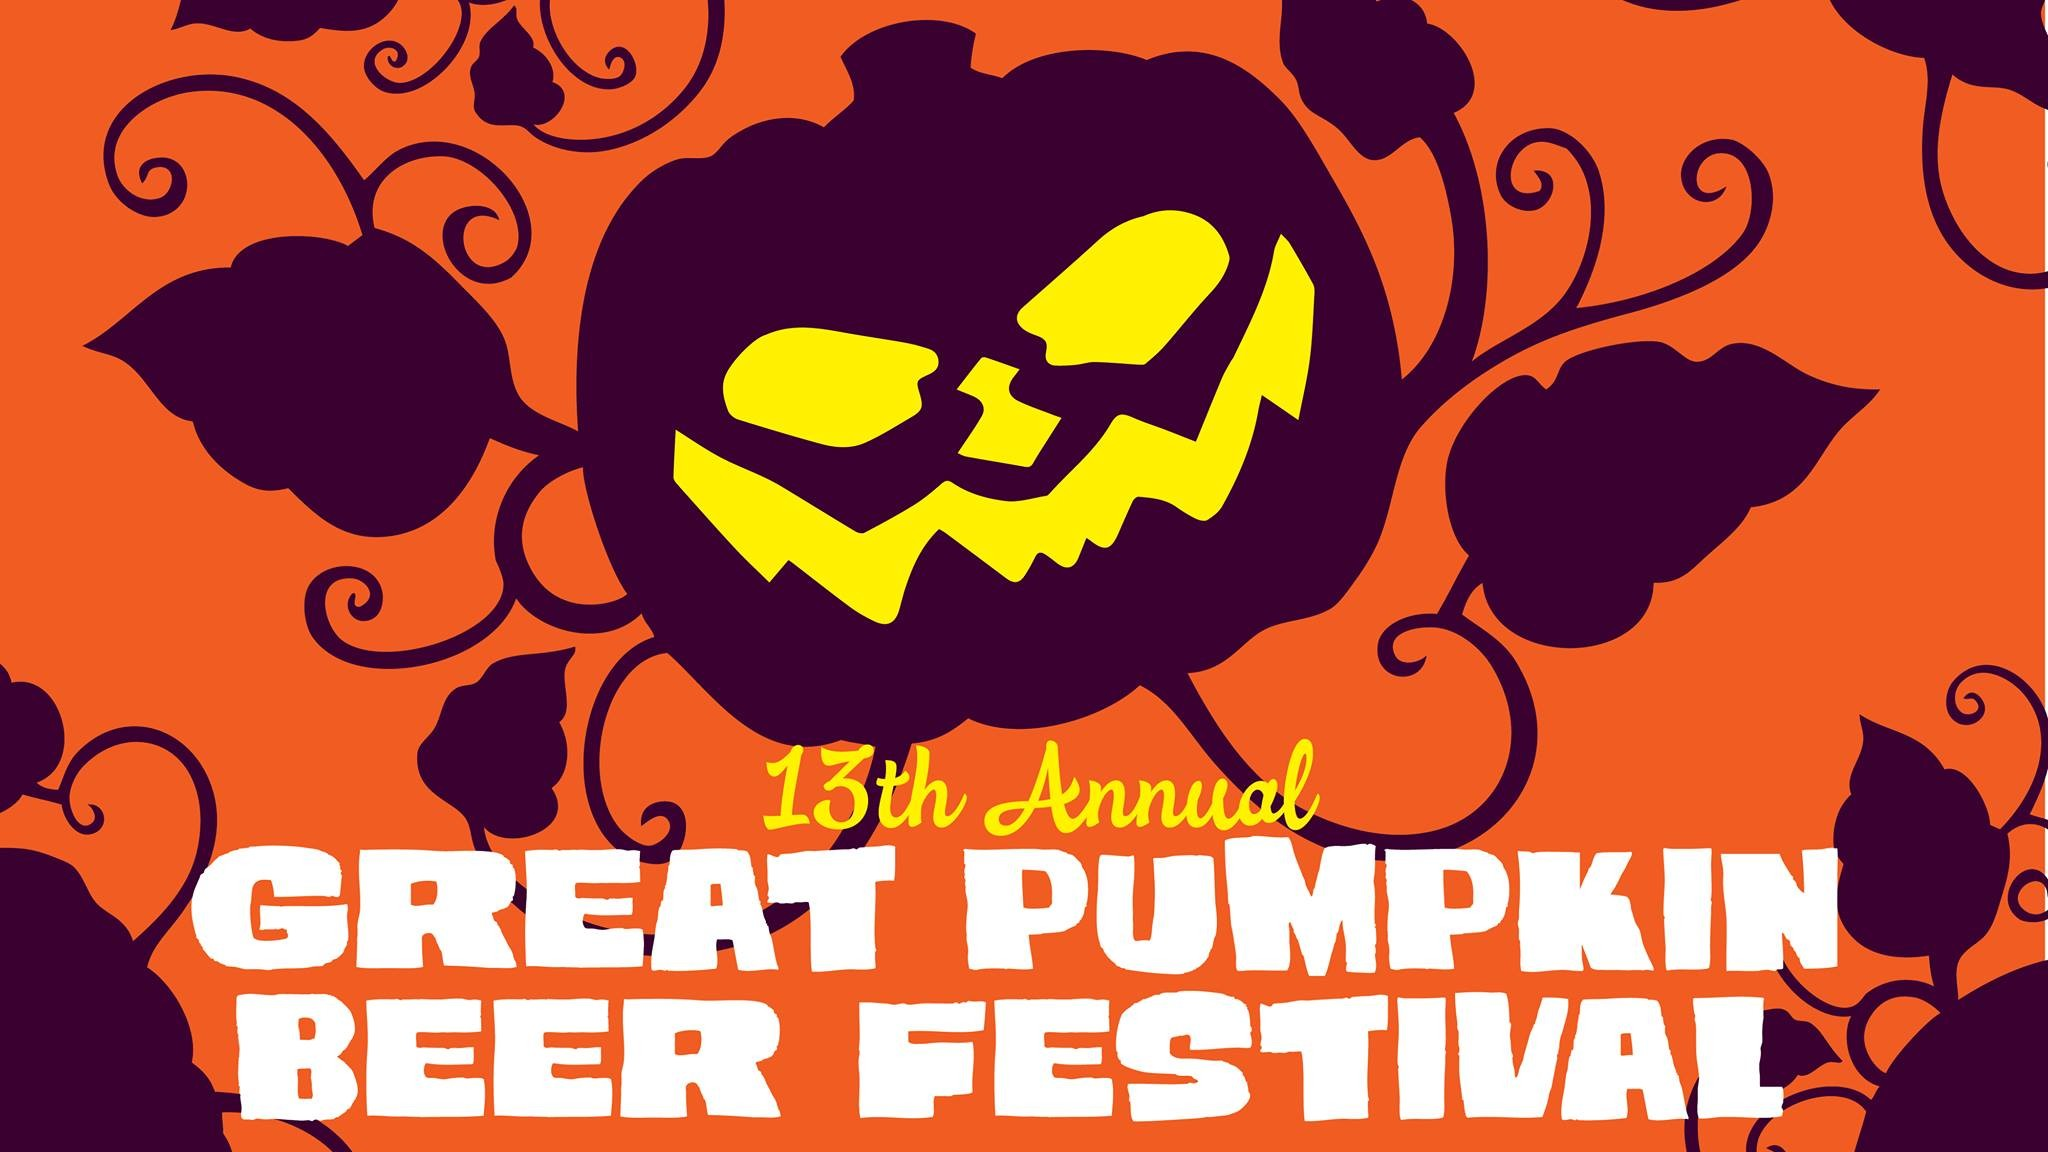 2048x1152 13th Annual Great Pumpkin Beer Festival Finds A New Home At the Seattle  Center